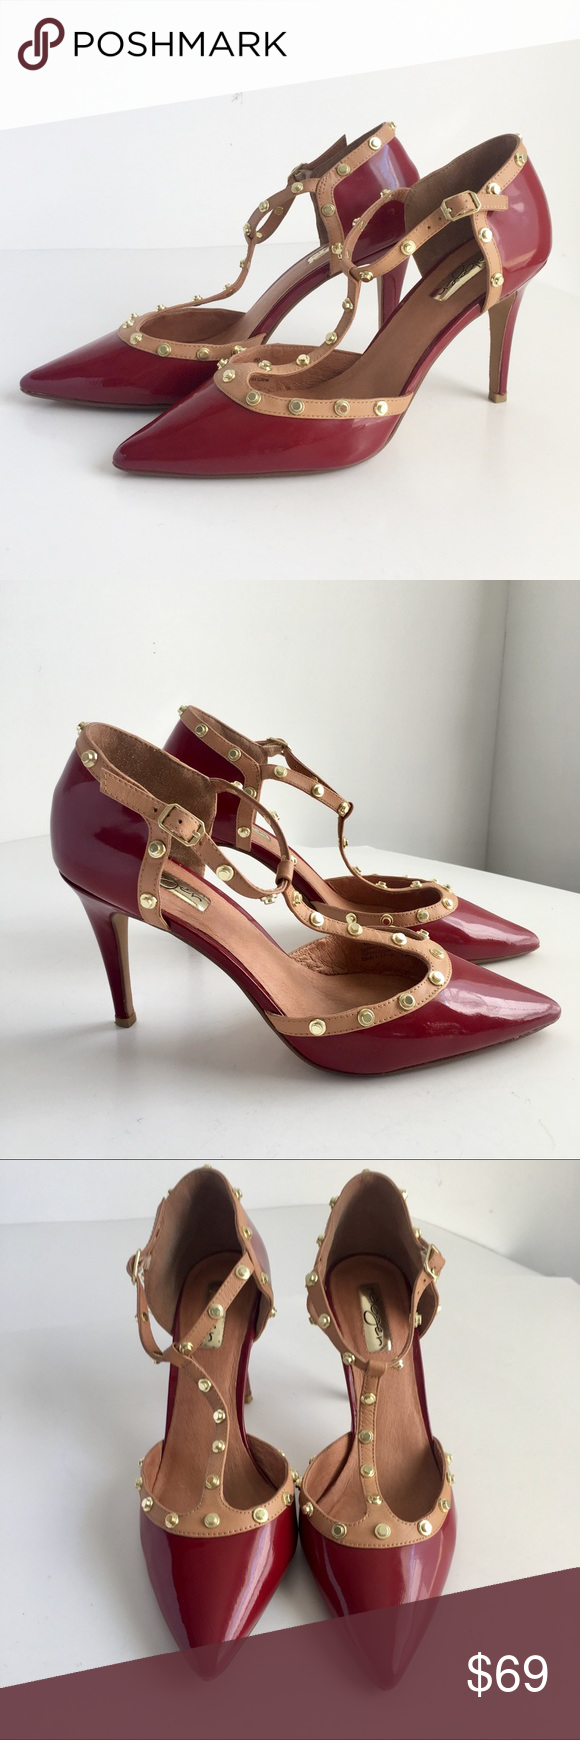 92cc174a3fc8 Halogen Studded Heels Red Patent Leather T-strap A gorgeous pair of Halogen  Heels in red patent leather with gold studded nude trim.